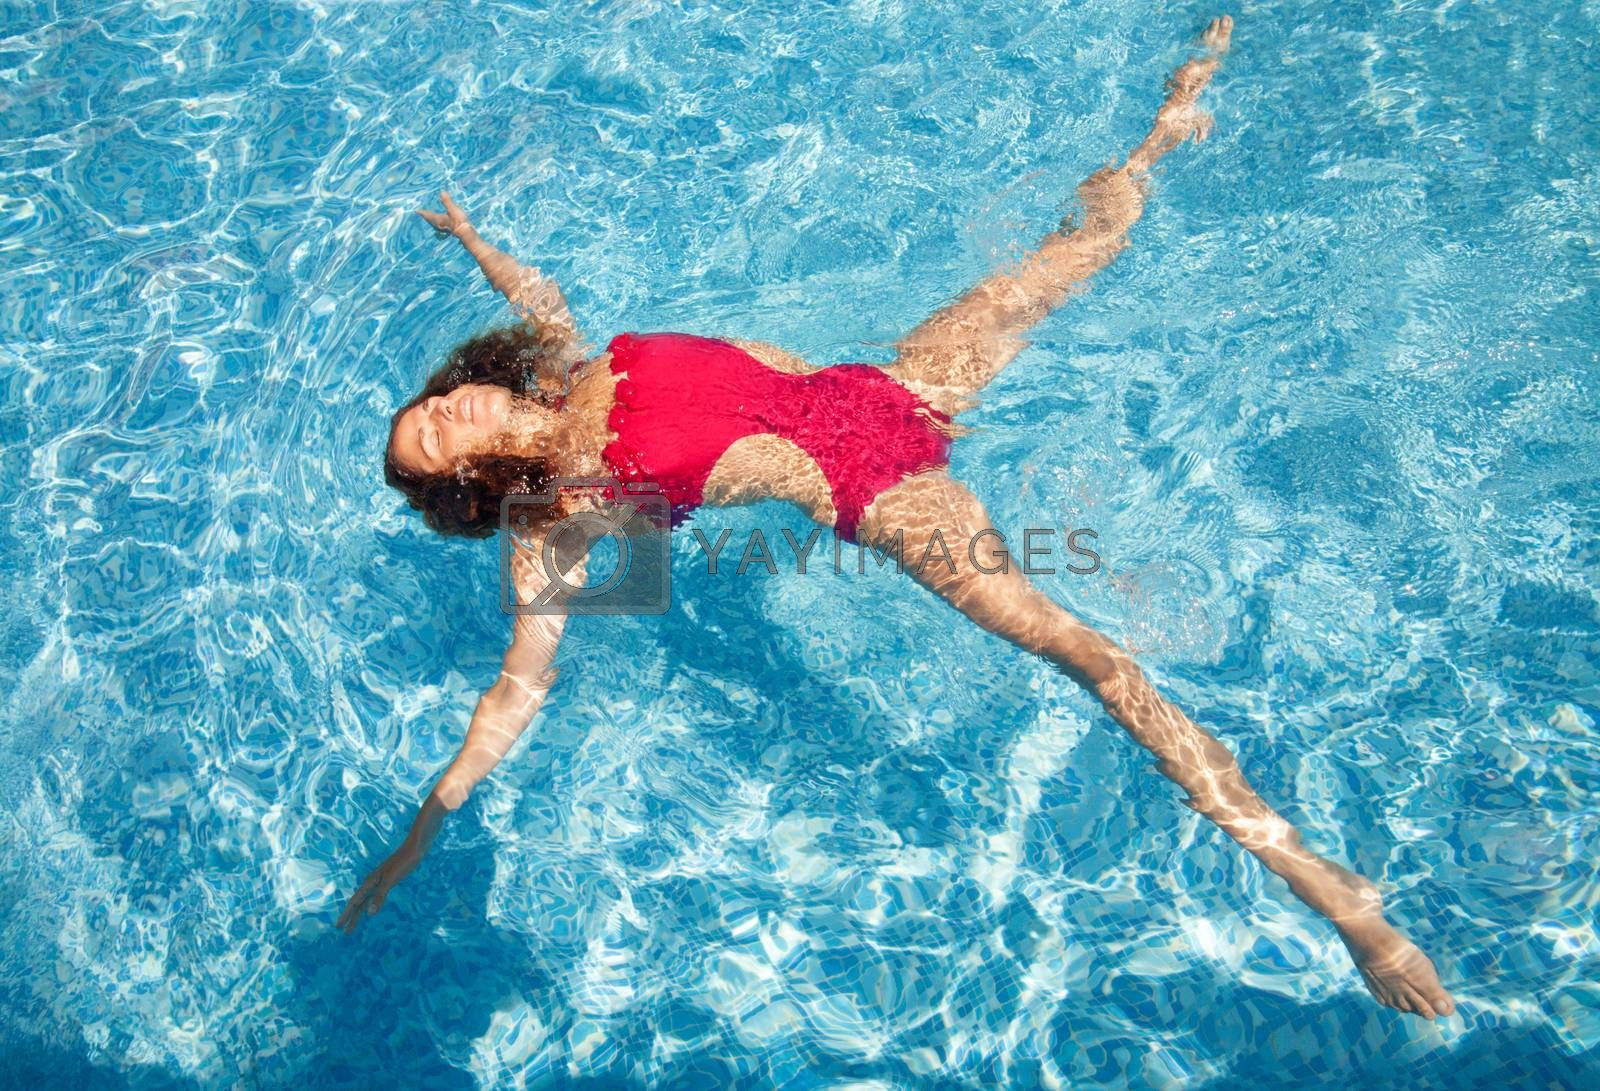 Beautiful young woman laying back on water in pool, star position - relaxed under the sun.